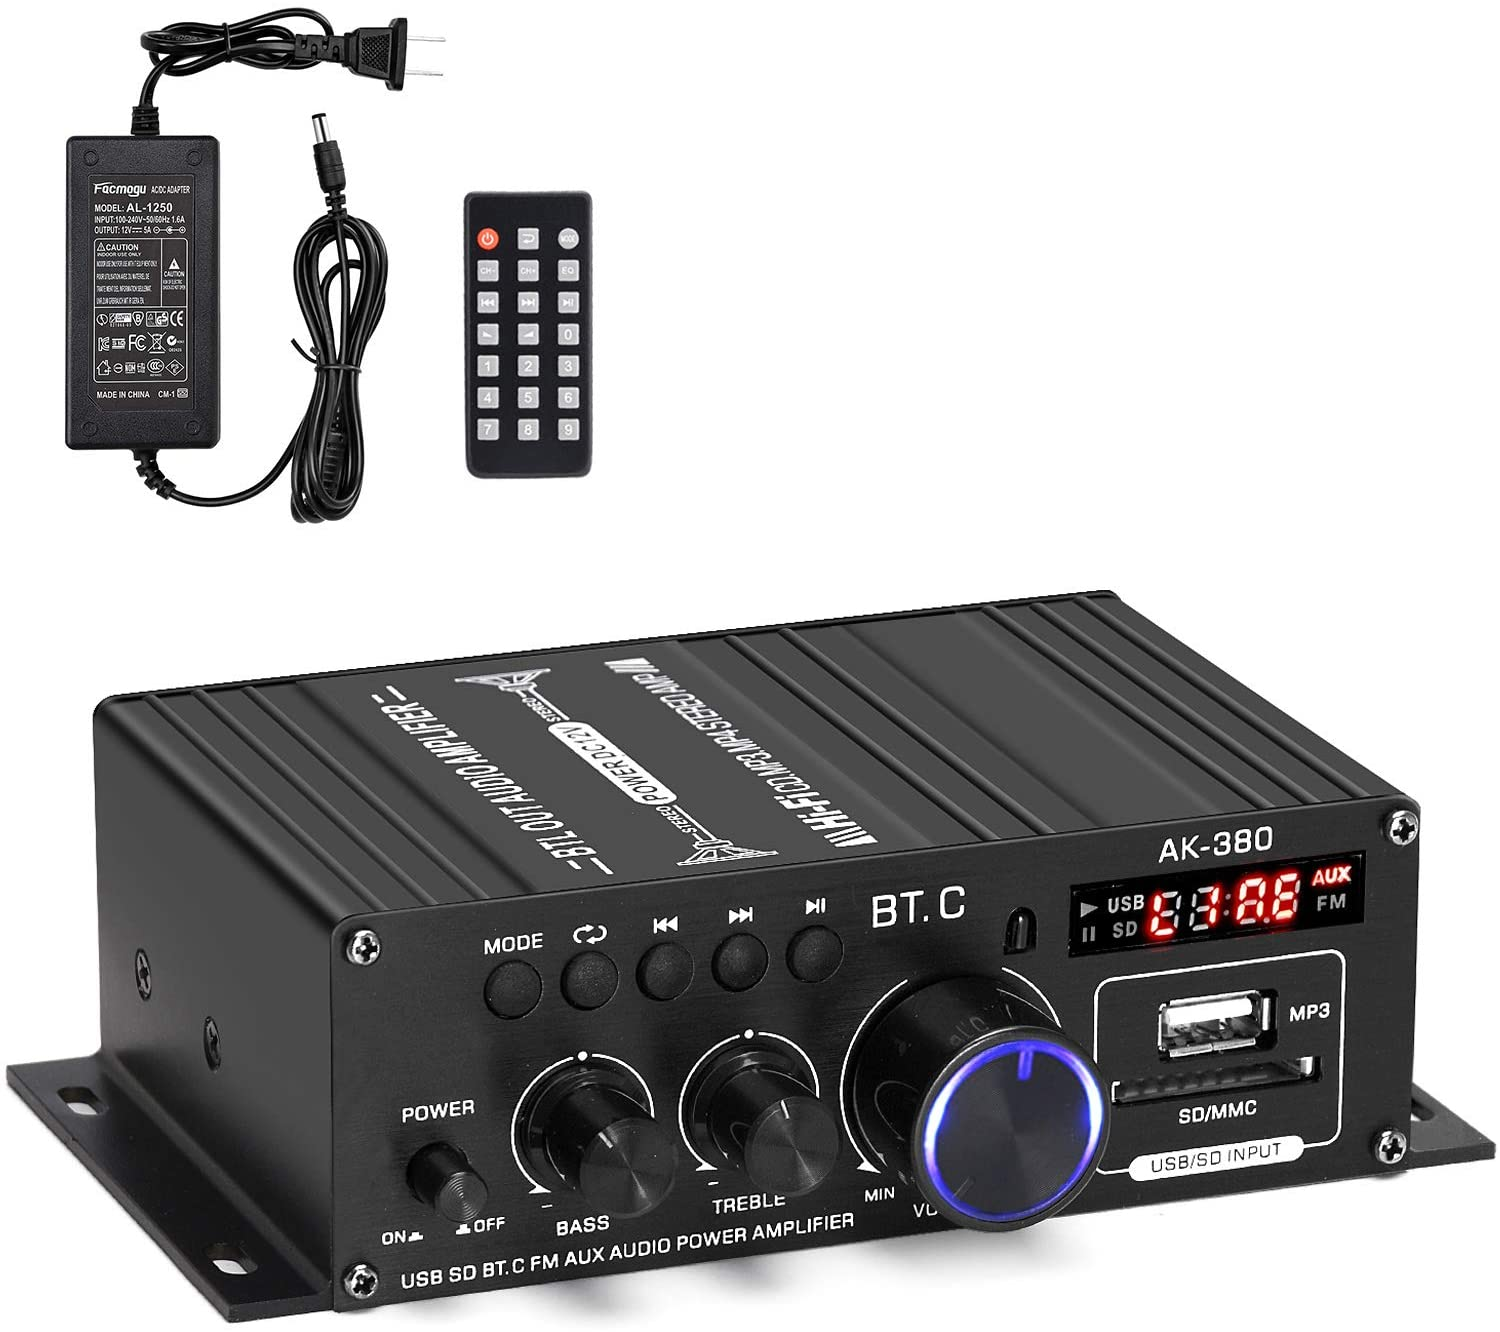 Facmogu AK380 400W+400W Mini Audio Power Amplifier, 2.0 CH Bluetooth 5.0 Receiver Speaker Amp with 12V 5A Power Supply, Bass & Treble Control Music Player Sound Amplifier for Car Home Garage